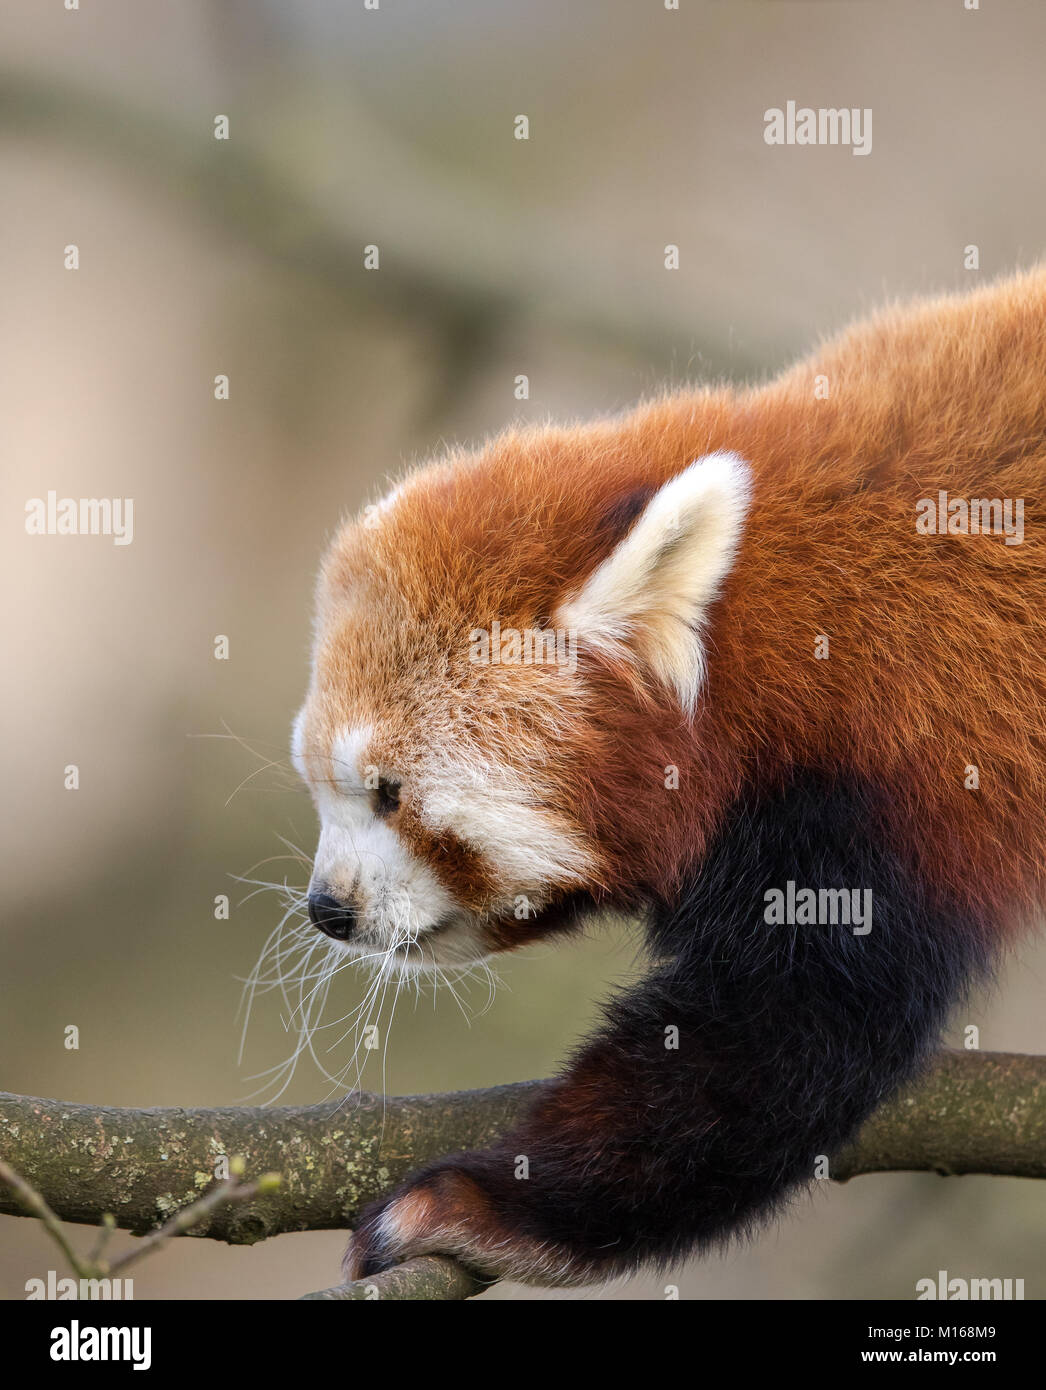 Close-up, side view of young red panda (Ailurus fulgens) climbing in trees. Detailed head & shoulder shot. Fluffy - Stock Image